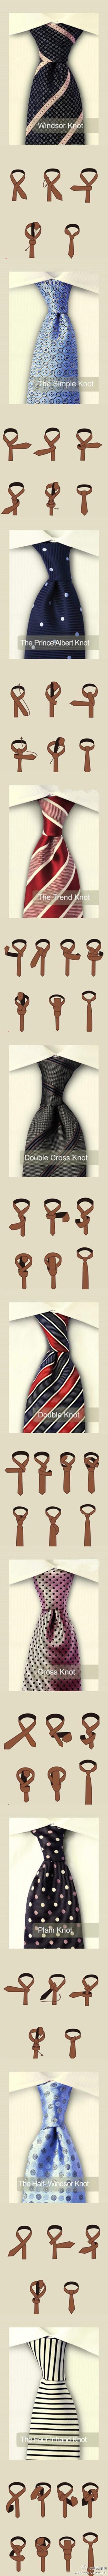 different ways to tie a tie.